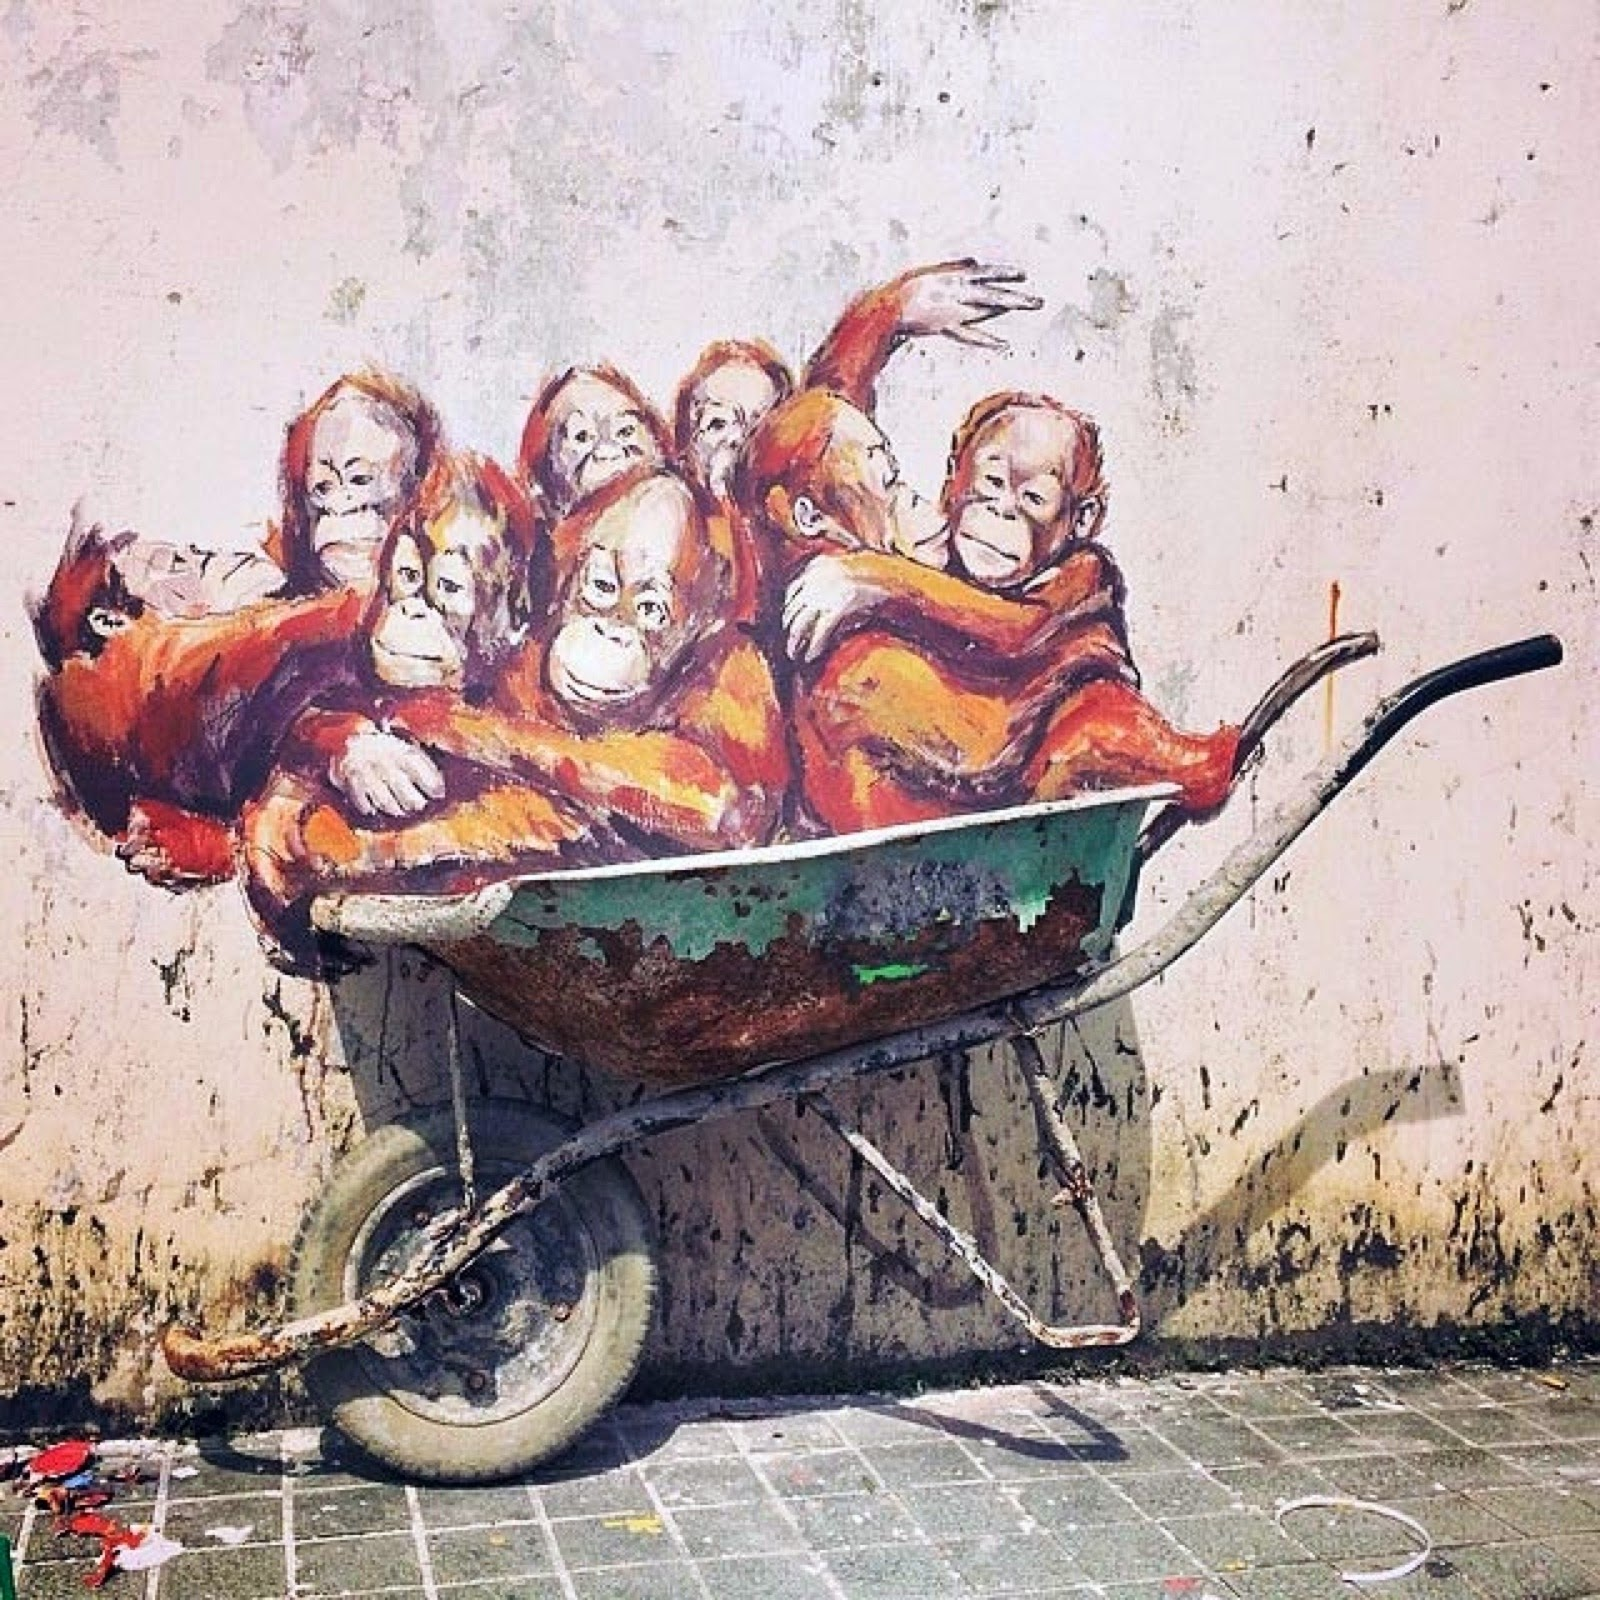 Ernest zacharevic new pieces kuching malaysia for Mural 1 malaysia